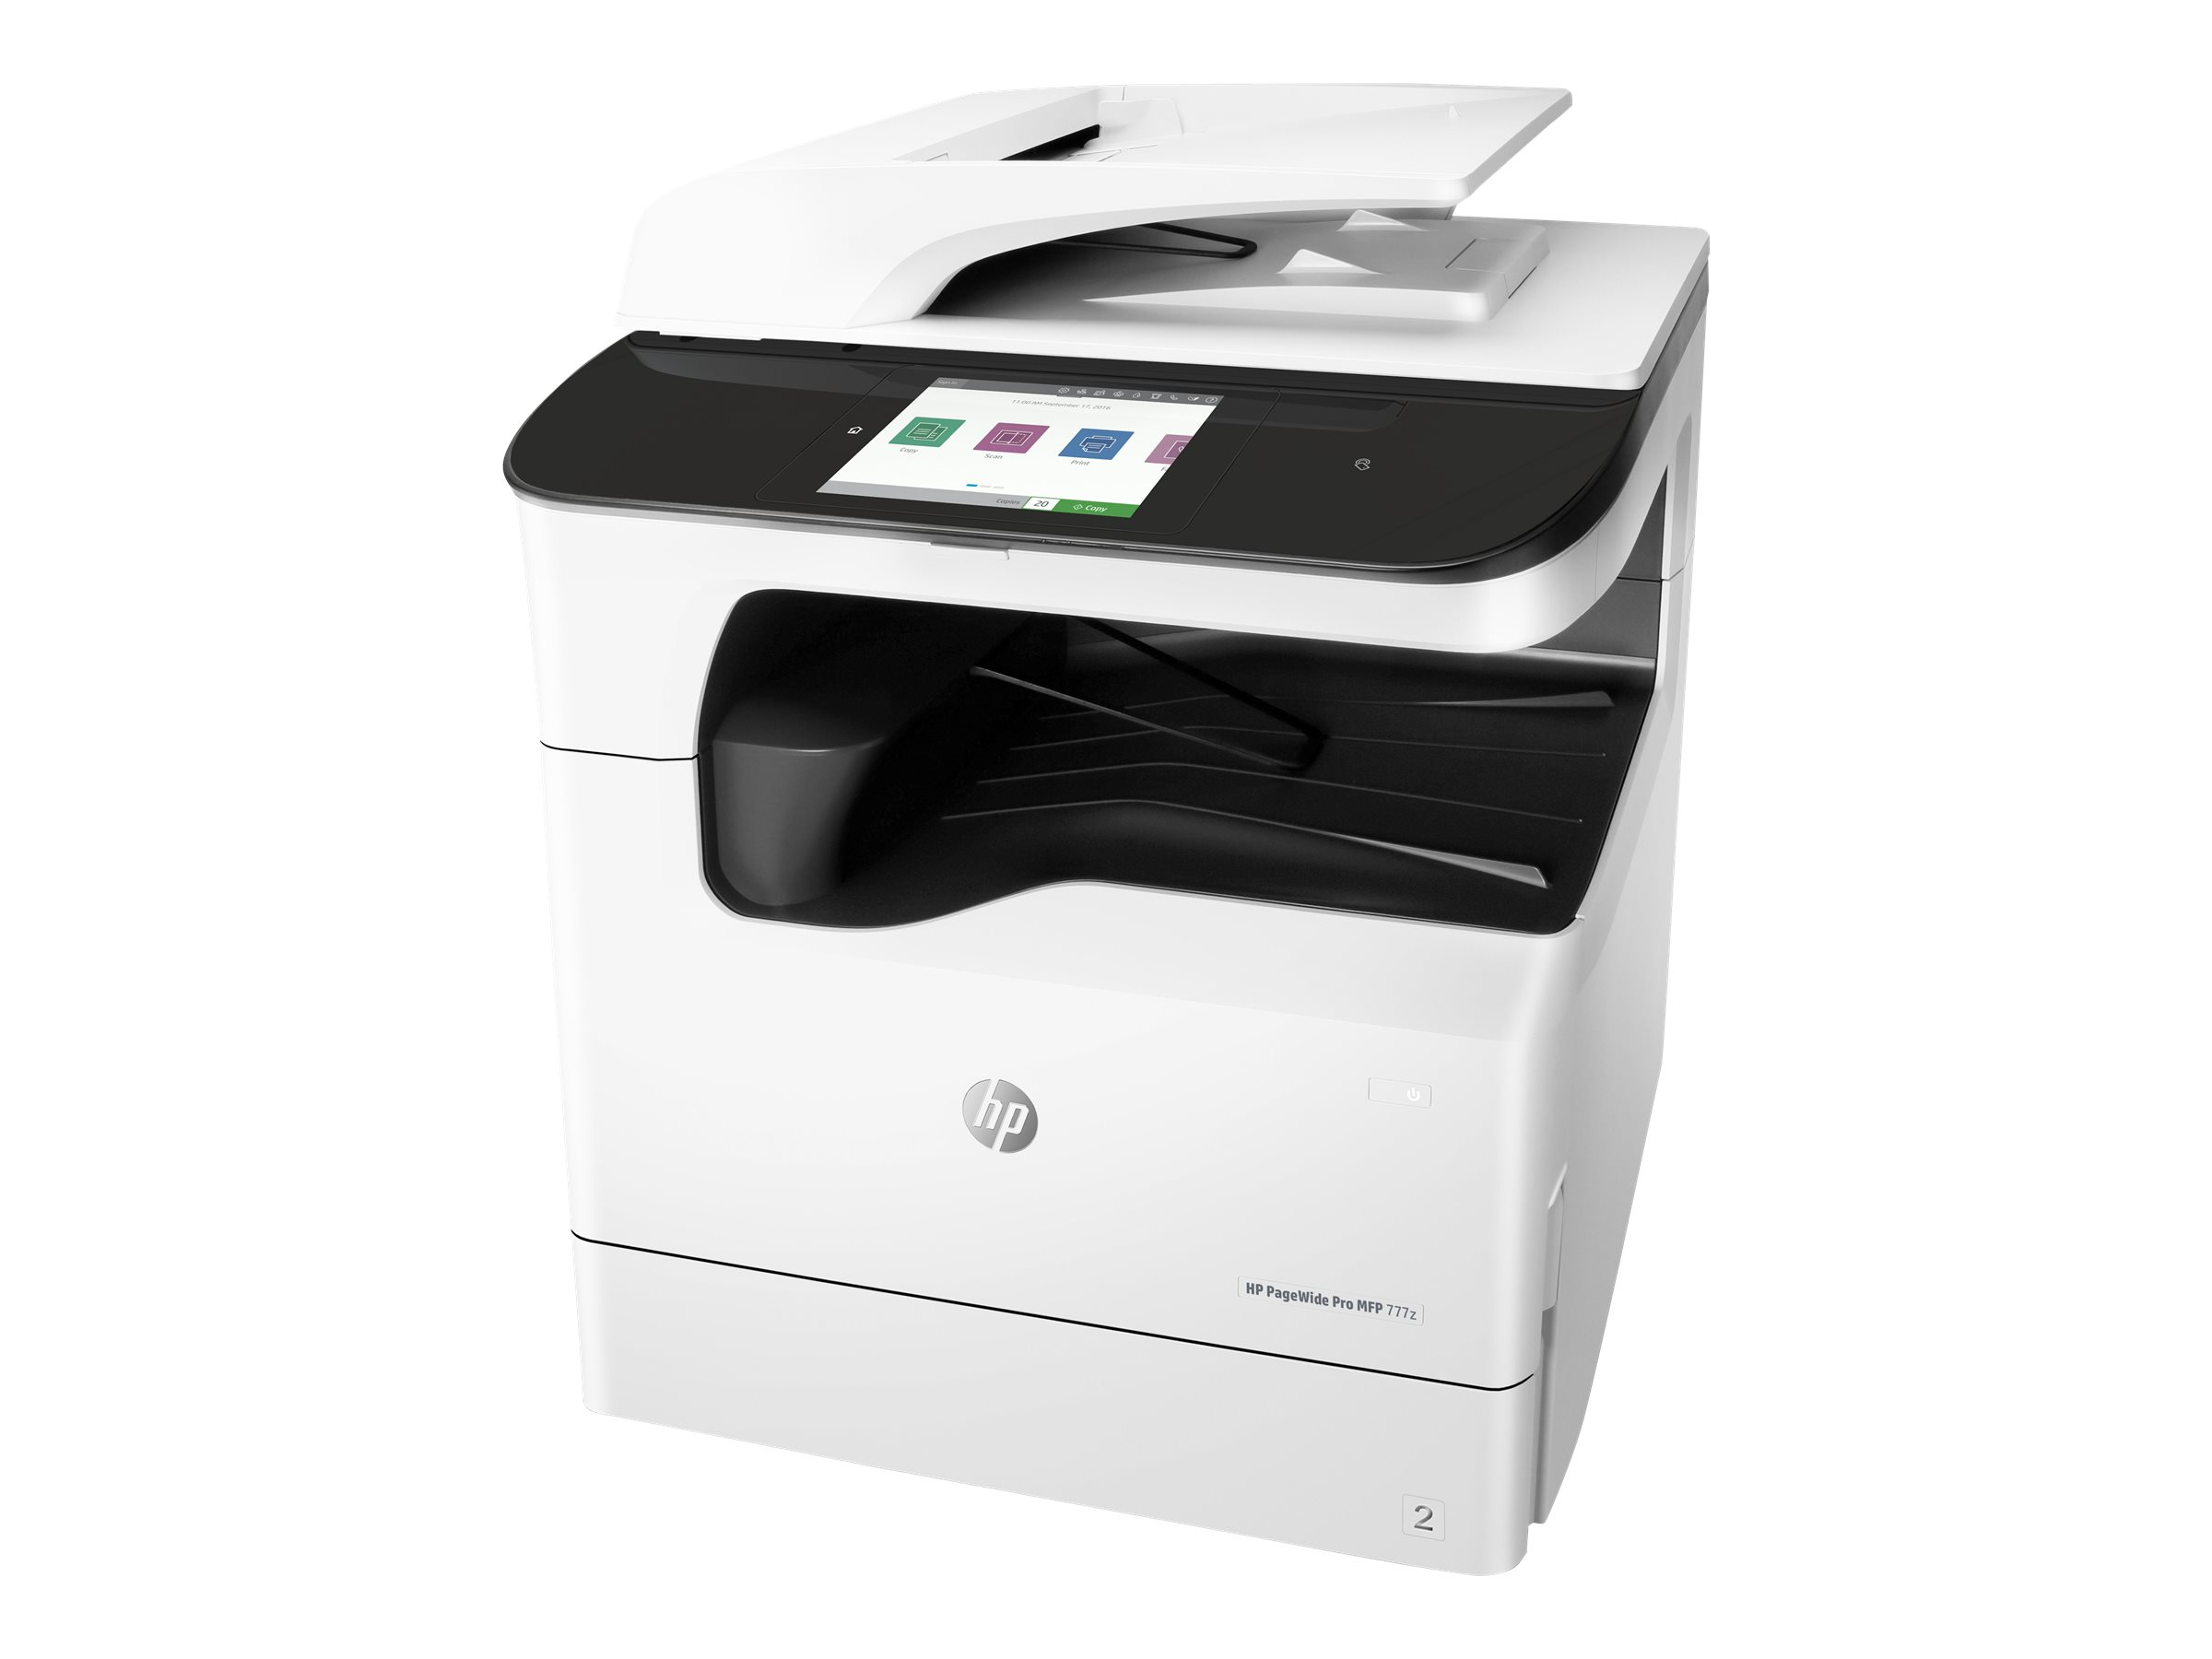 HP PageWide Pro 777z - Multifunktionsdrucker - Farbe - Tintenstrahl - A4 (210 x 297 mm), A3 (297 x 420 mm) (Original) - A3 (Medien)